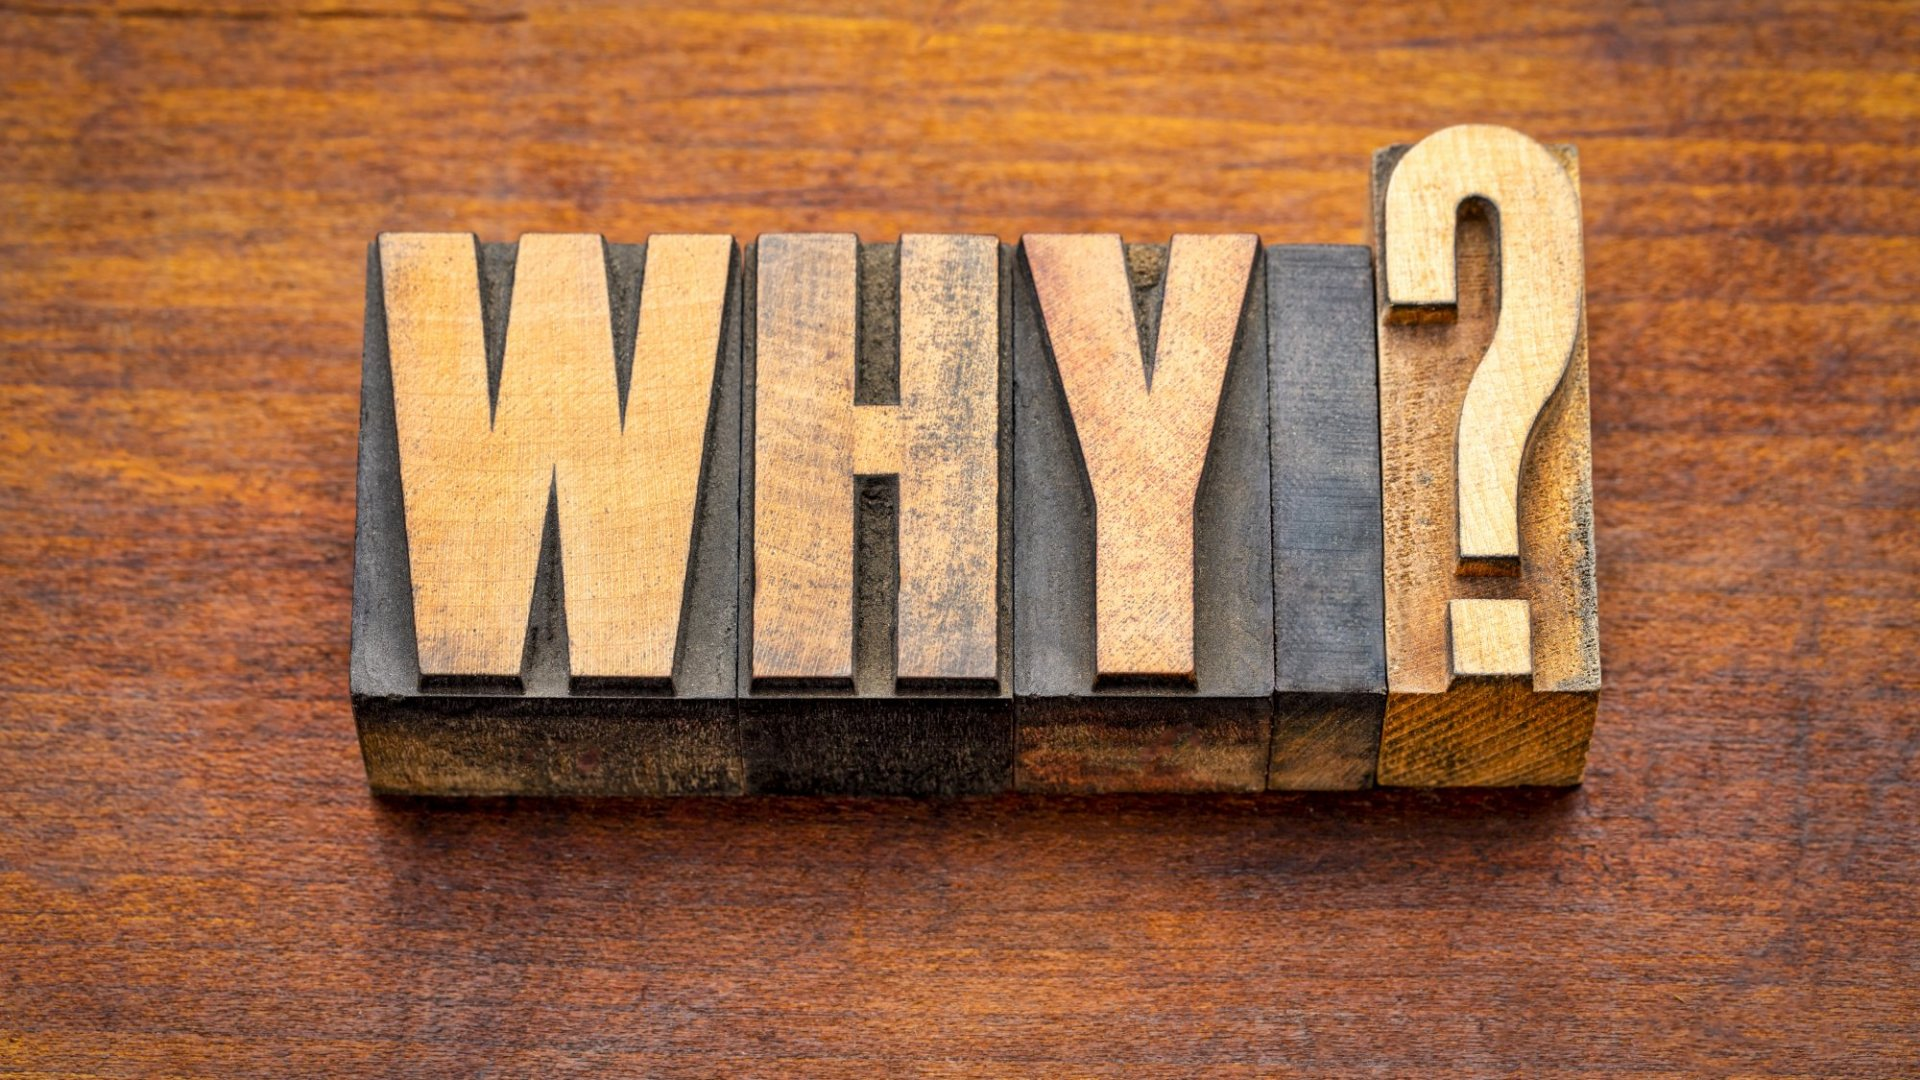 The 5 Whys: Secret Technique to Get to the Bottom of Any Issue